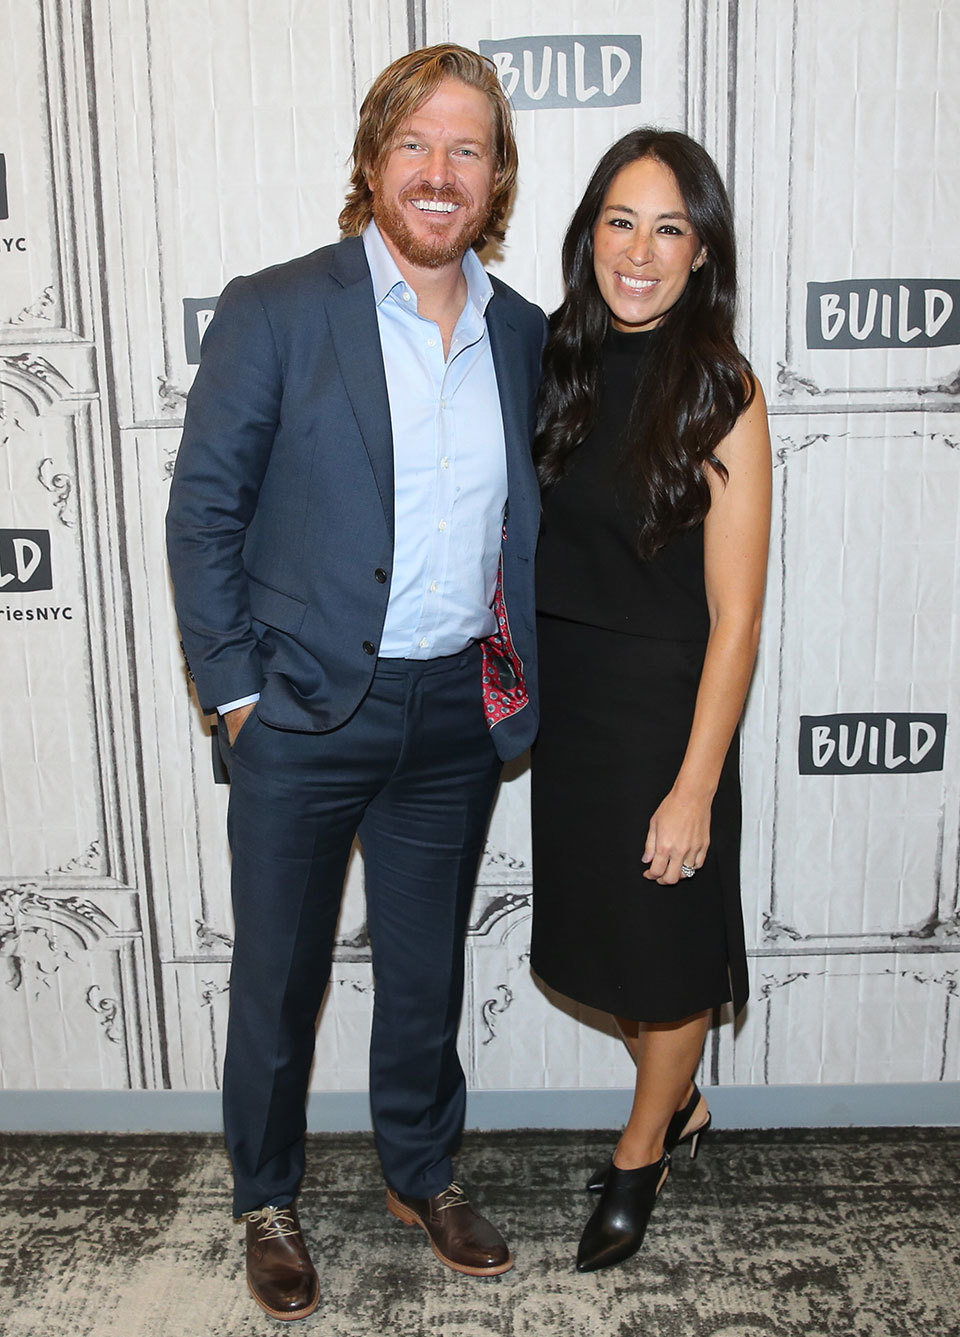 Chip and Joanna Gaines standing together and smiling